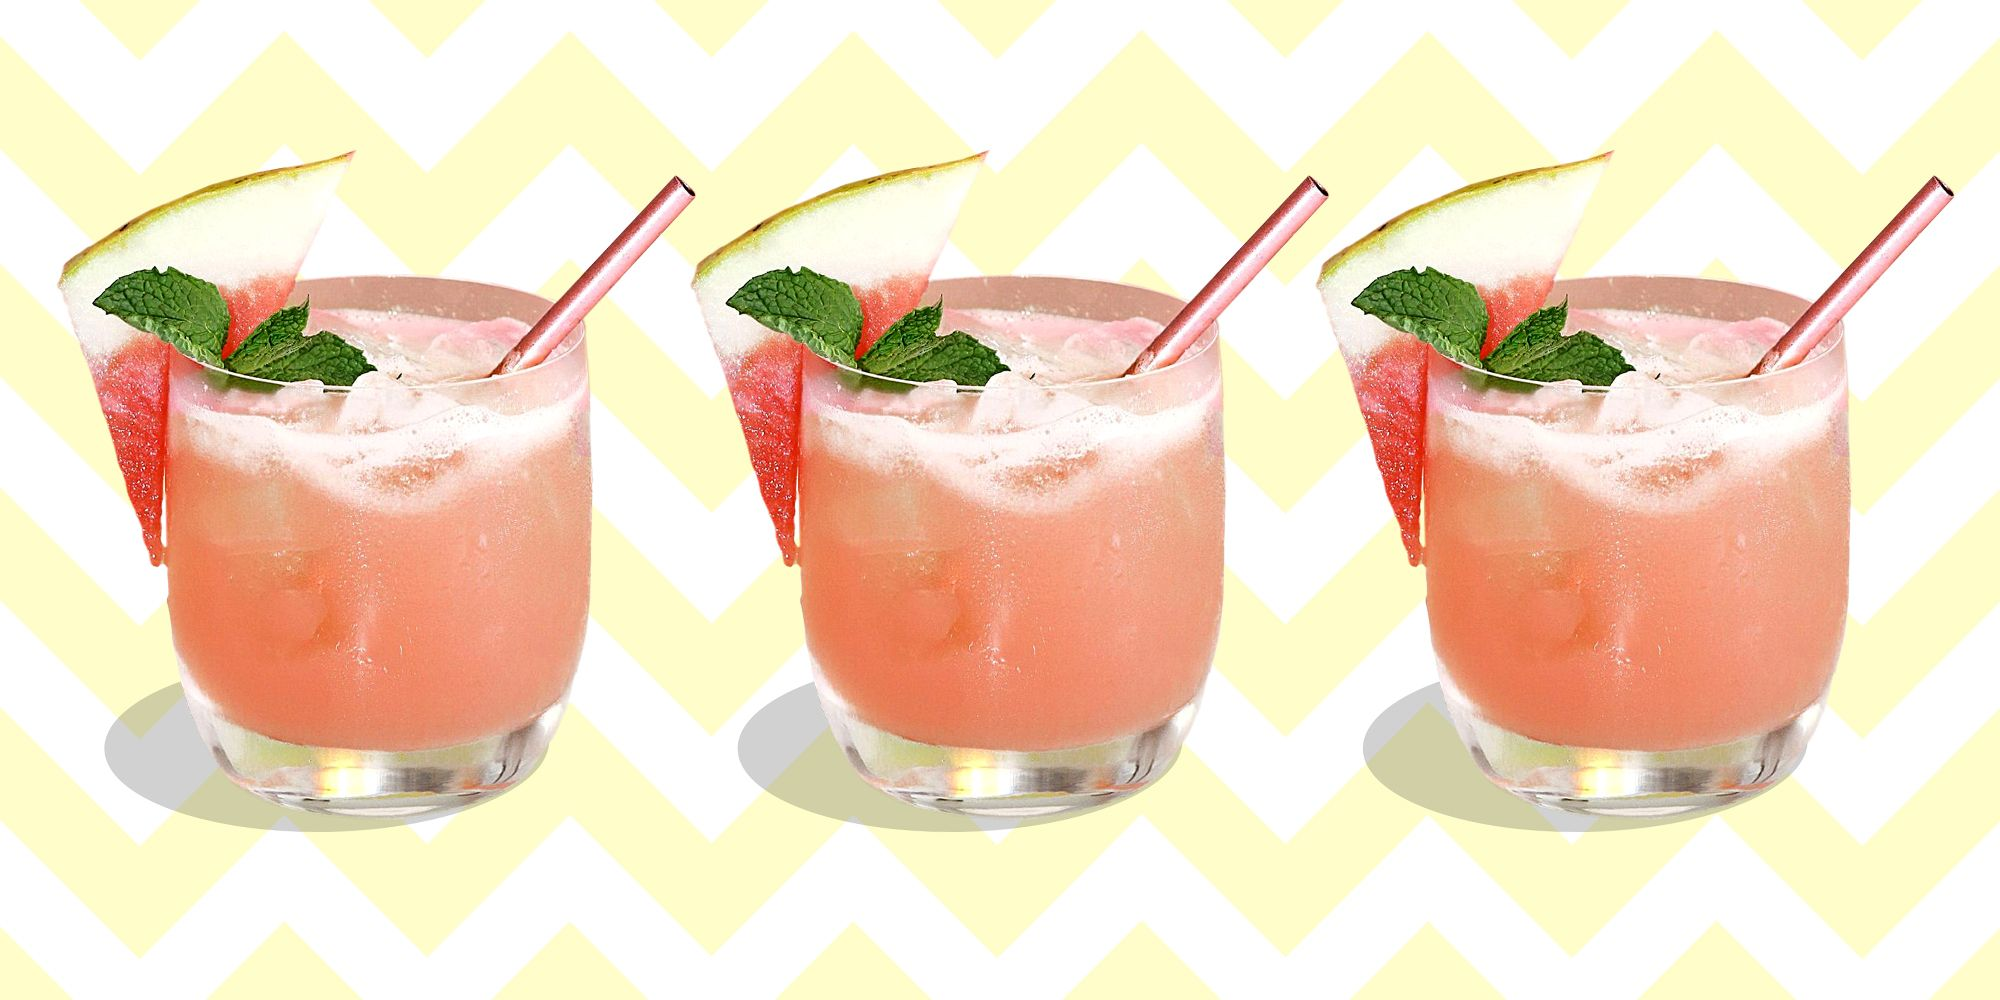 21 Labor Day Cocktails Perfect for Capping Off the Summer